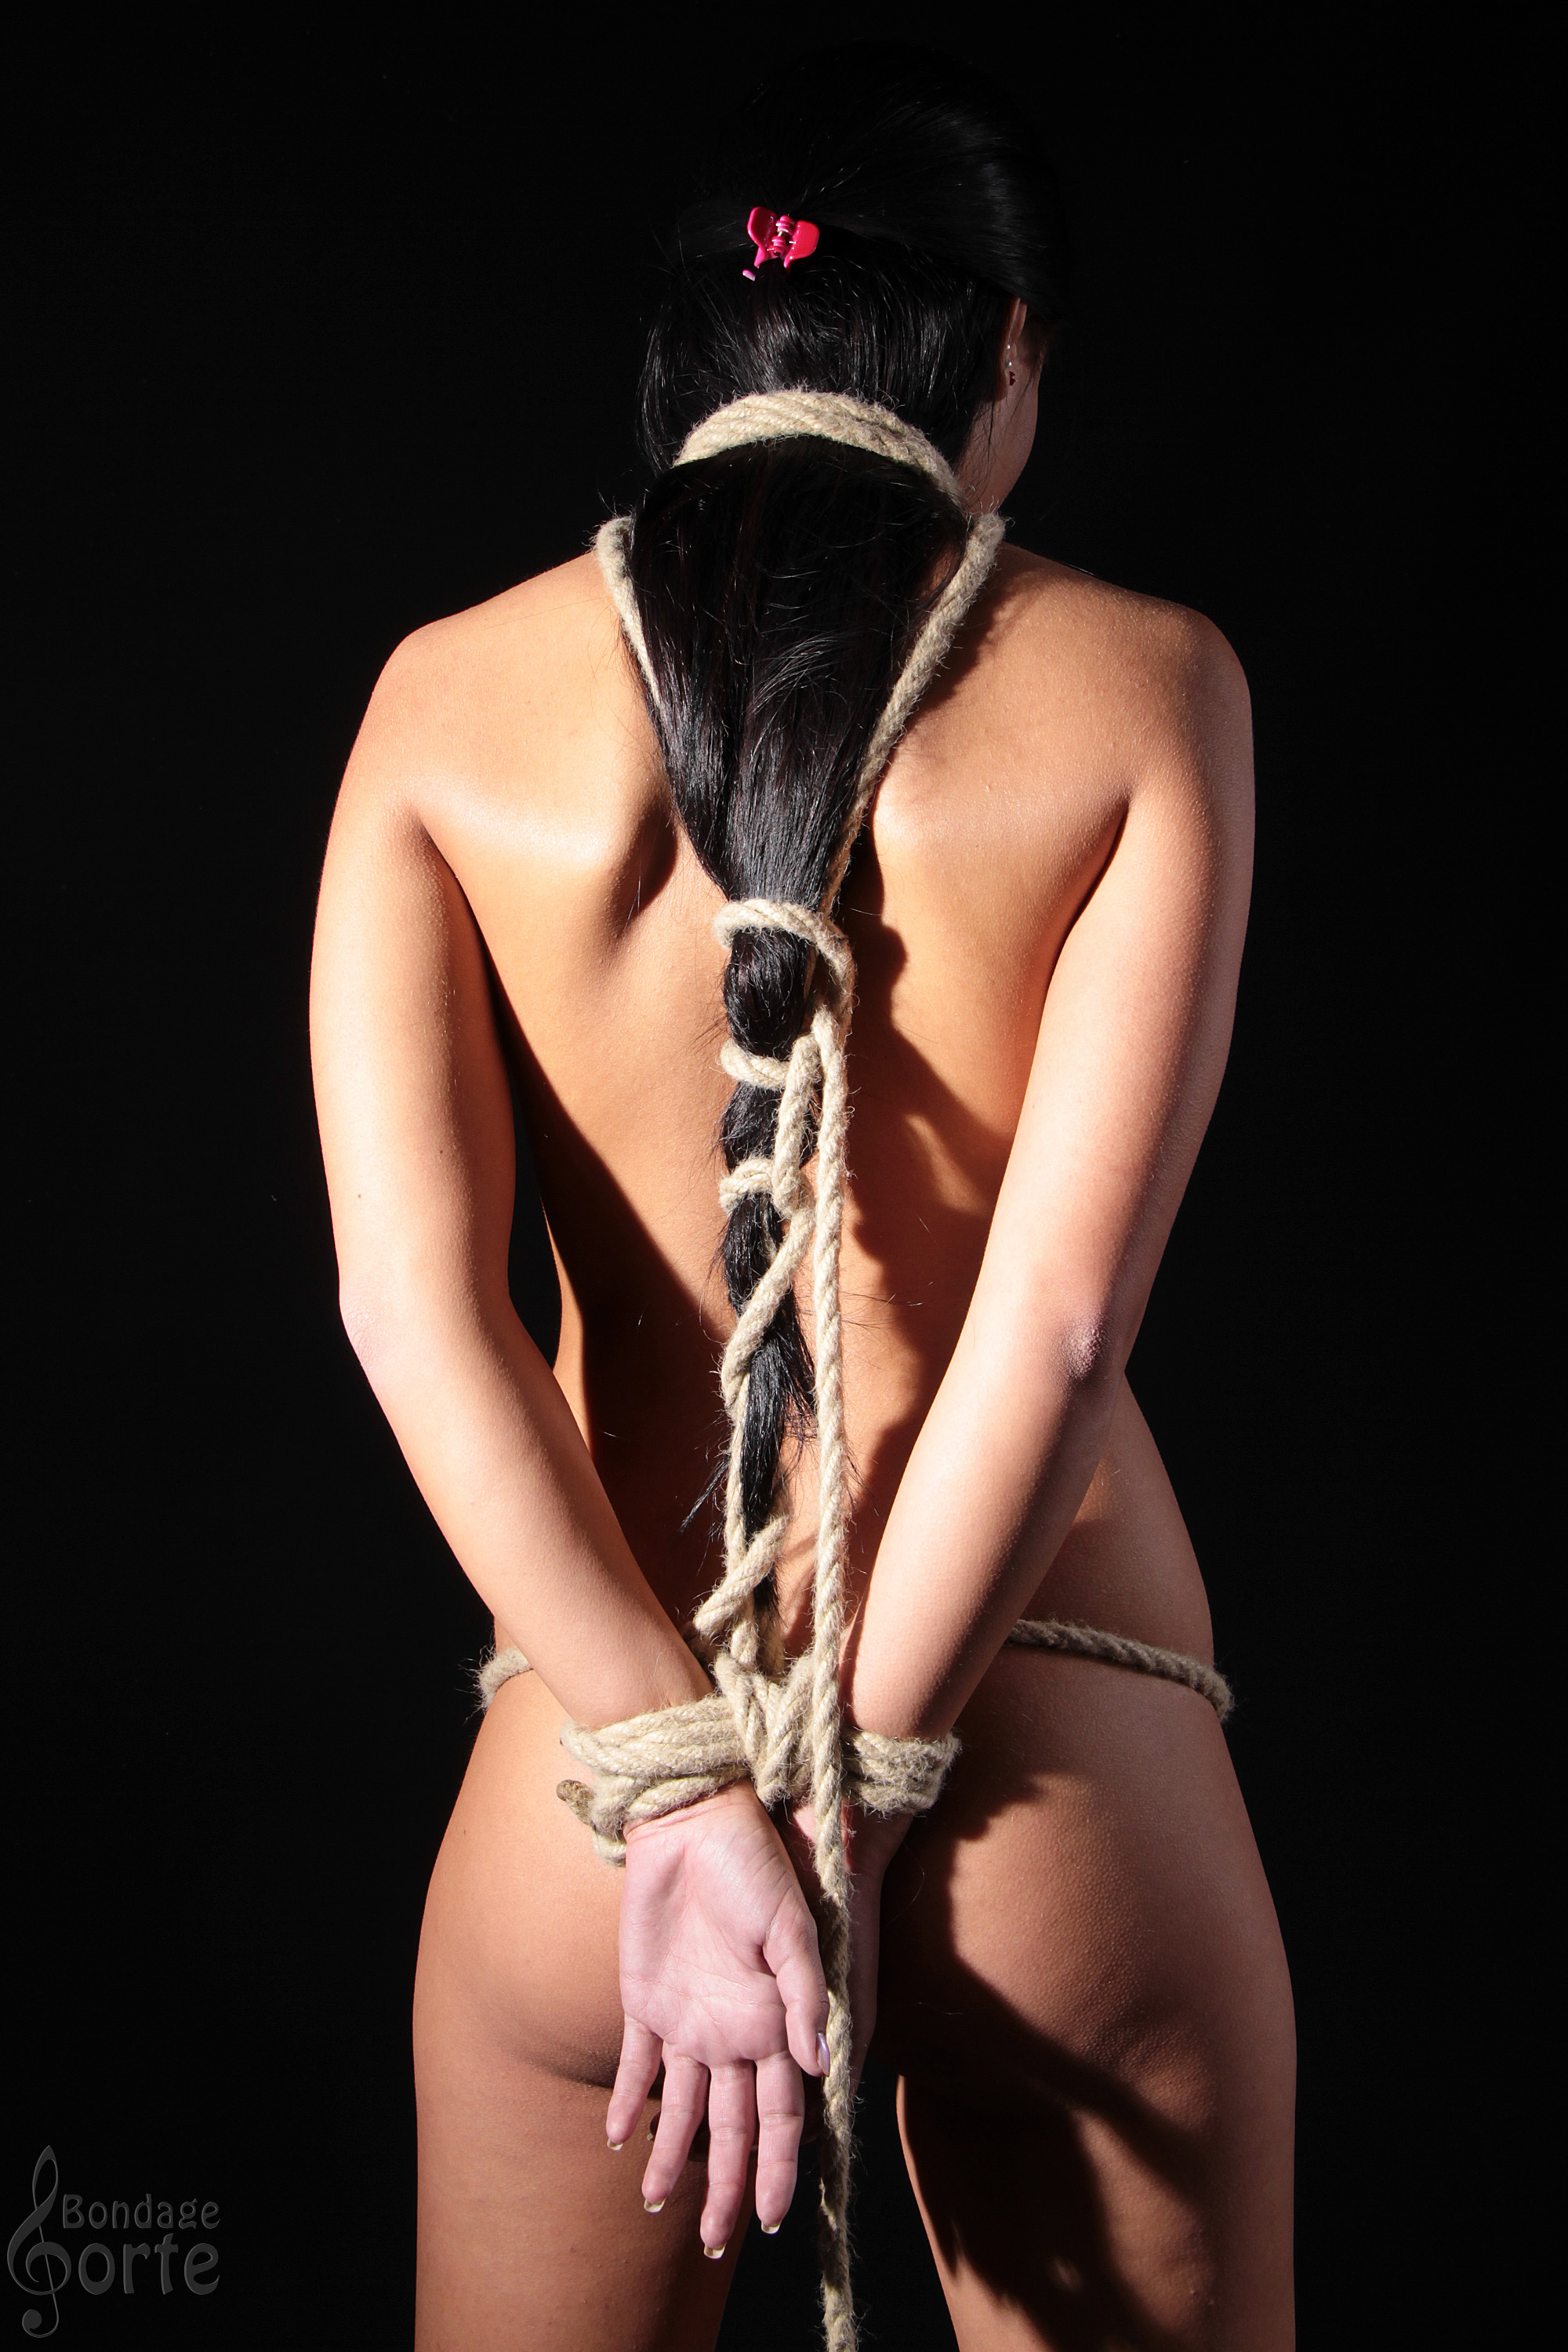 types of bondage